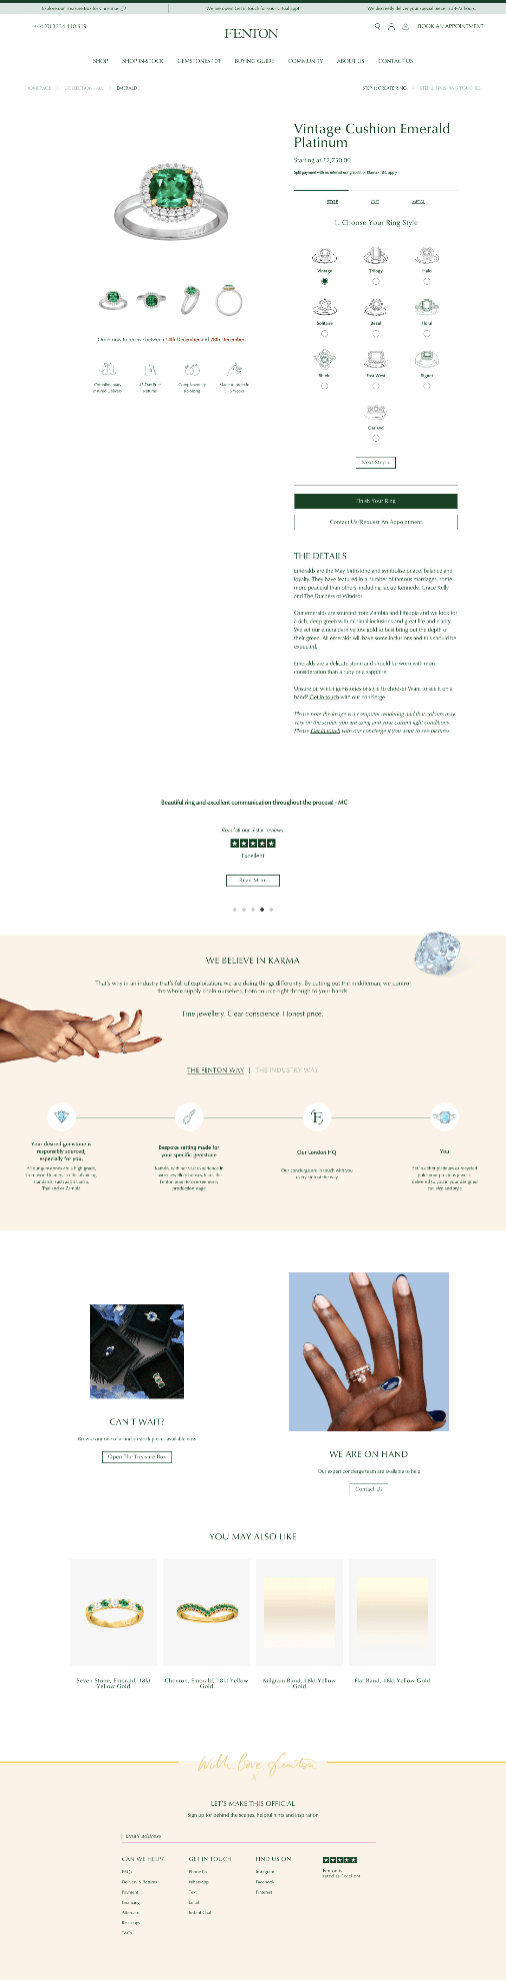 Creative Sample #4: Previous (control) landing page for jeweler